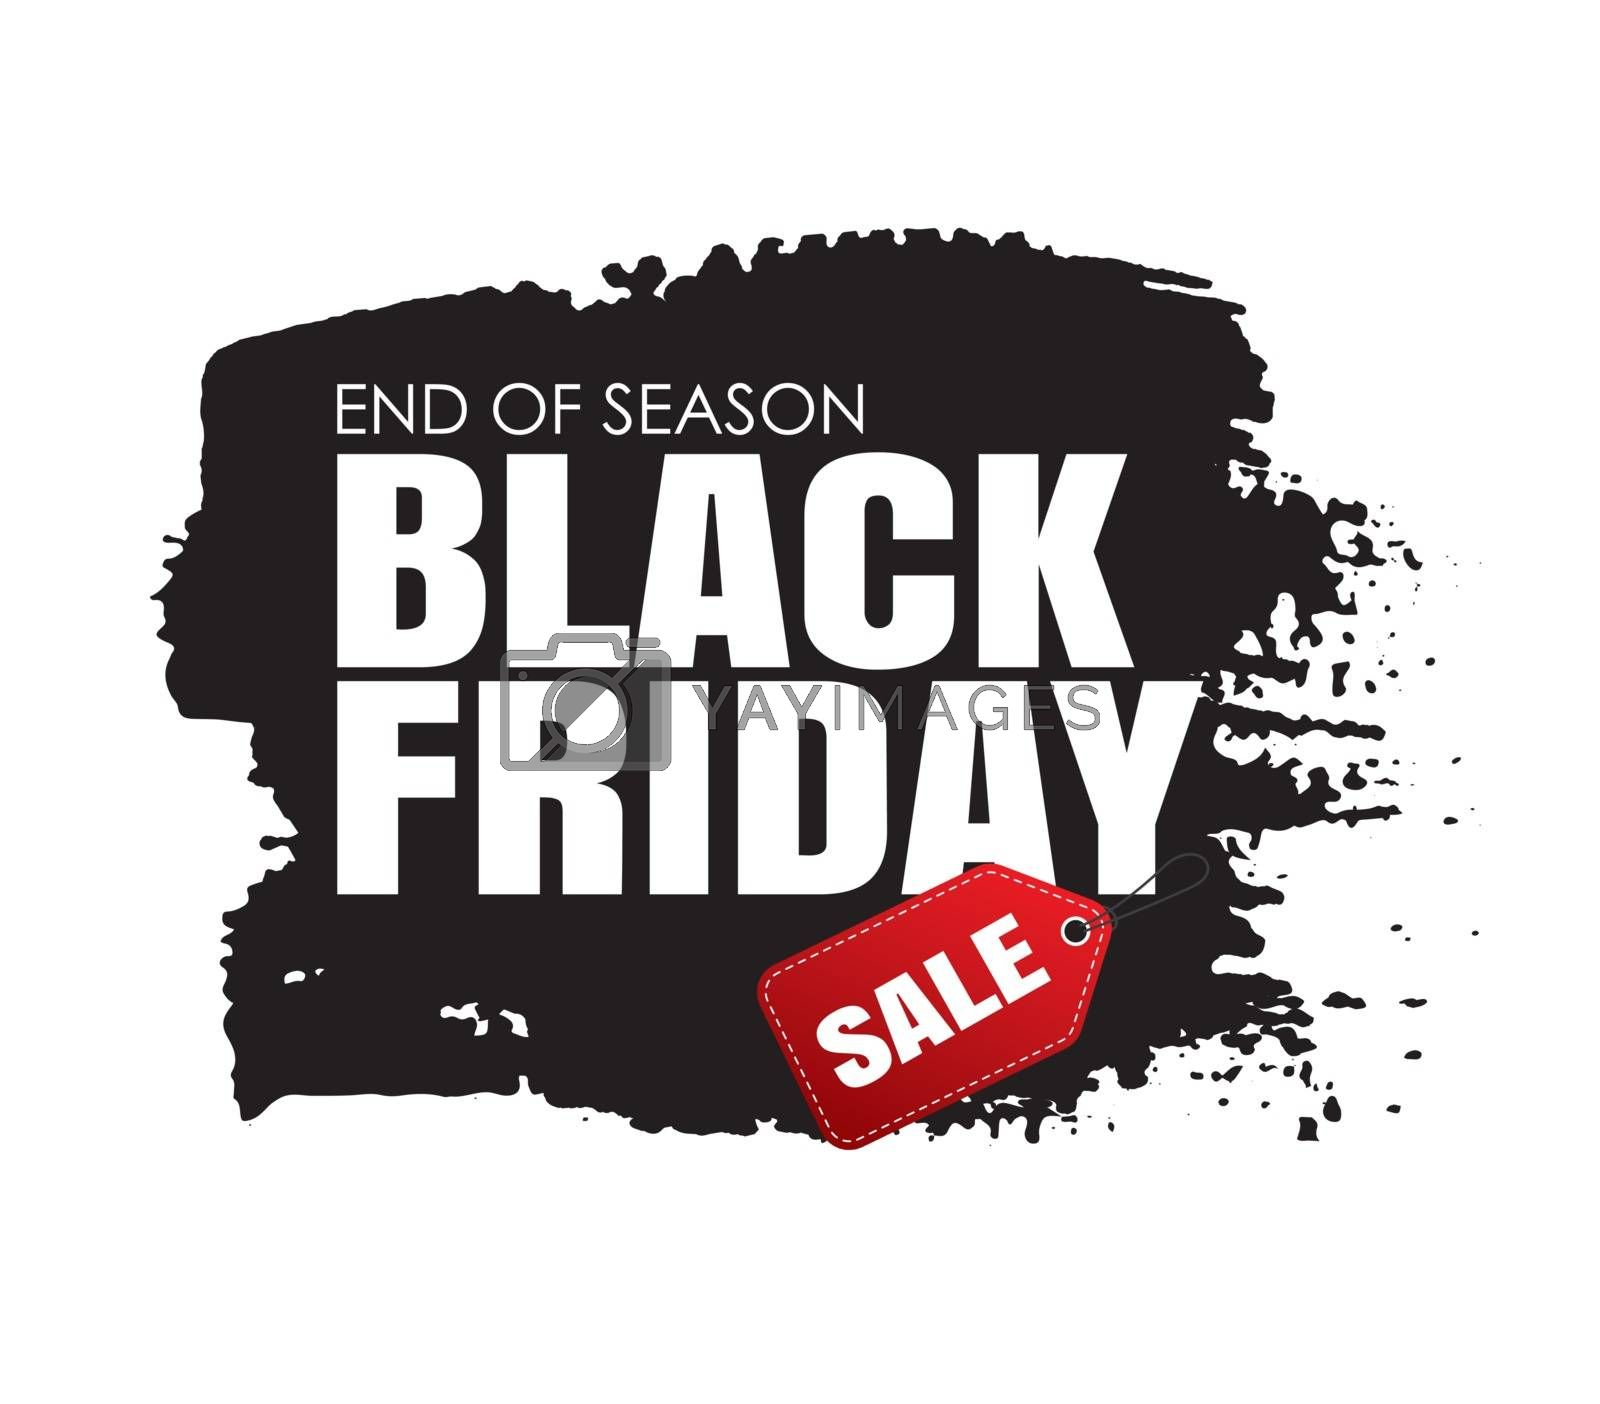 Black friday sale banner with white text on grunge black brush stroke. Use for discount, shopping, promotion, advertising.